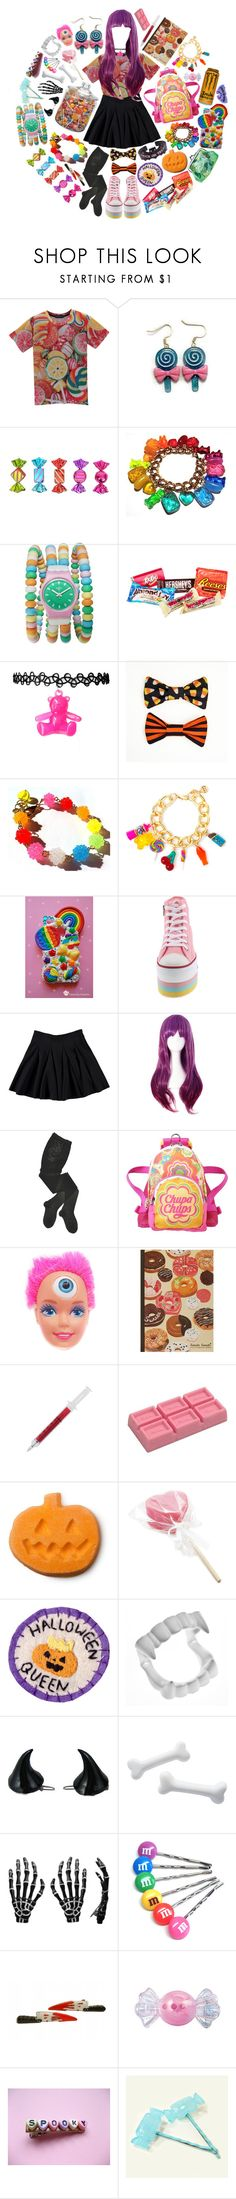 """""""Trick or Treat"""" by sw-13 ❤ liked on Polyvore featuring Hard Candy, Hershey's, Dylan's Candy Bar, HYD, Chupa Chups, Rachael Ray and Kreepsville 666"""